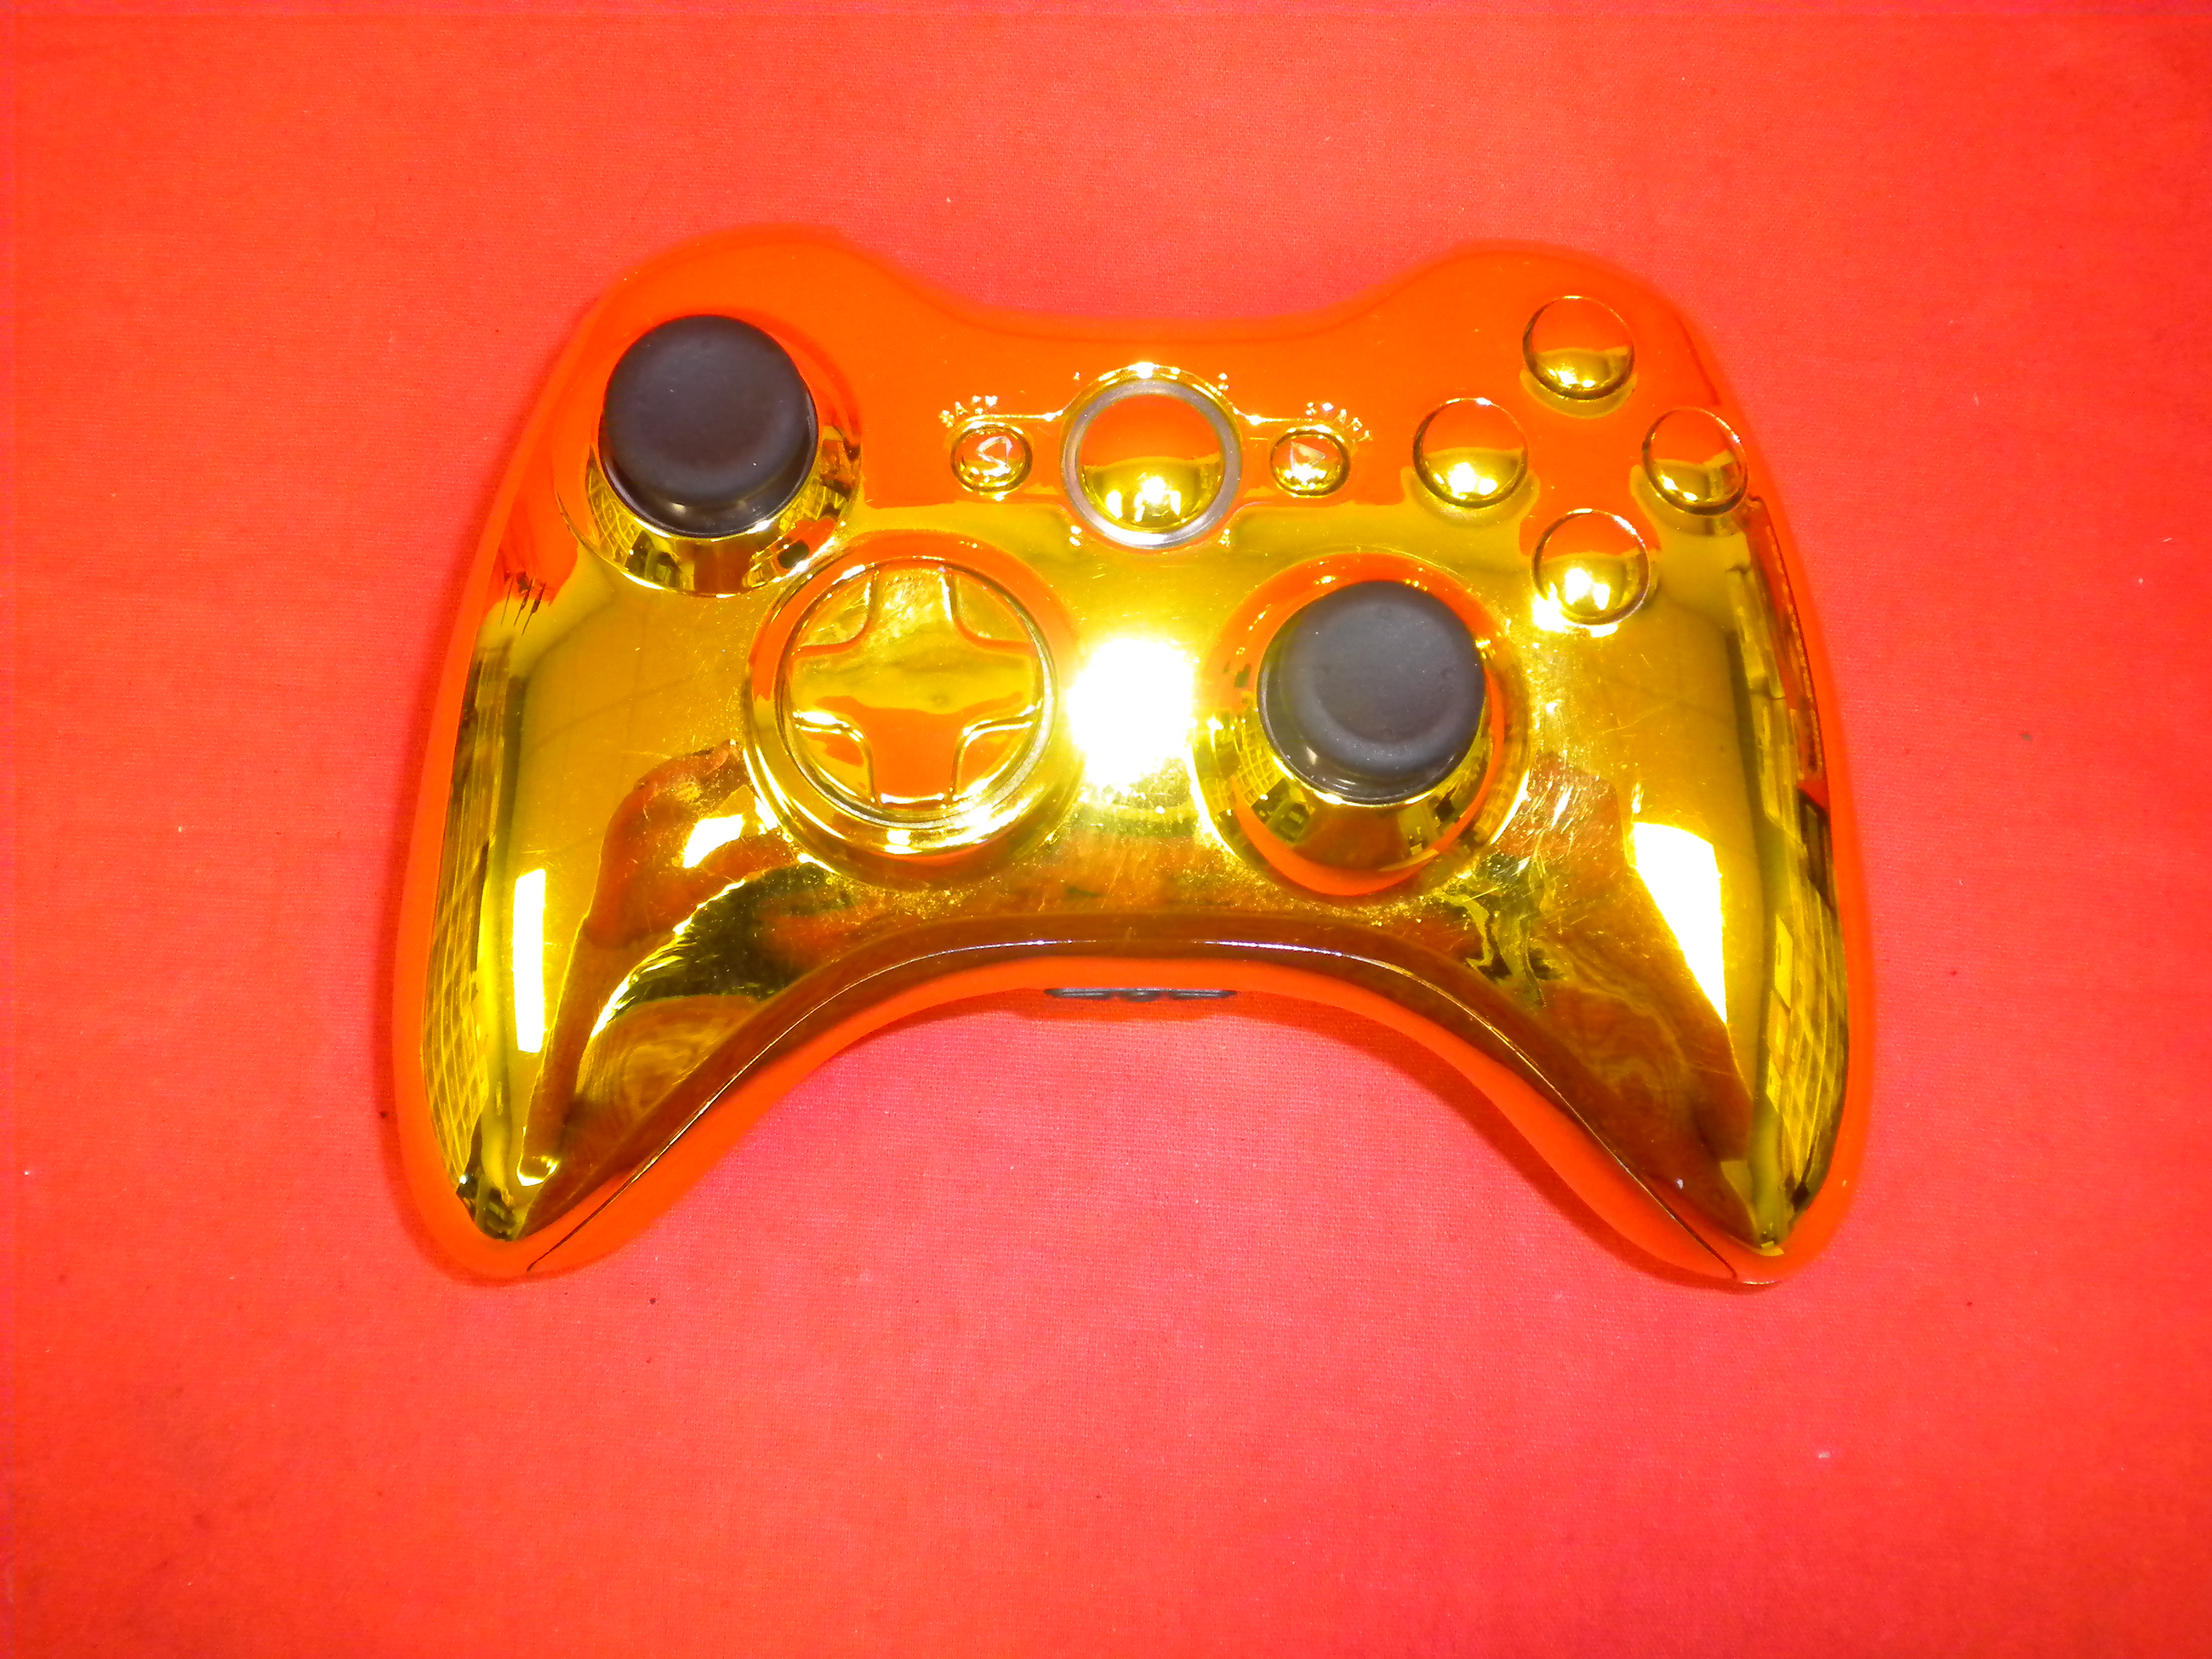 Gold Modded Controller For Xbox 360